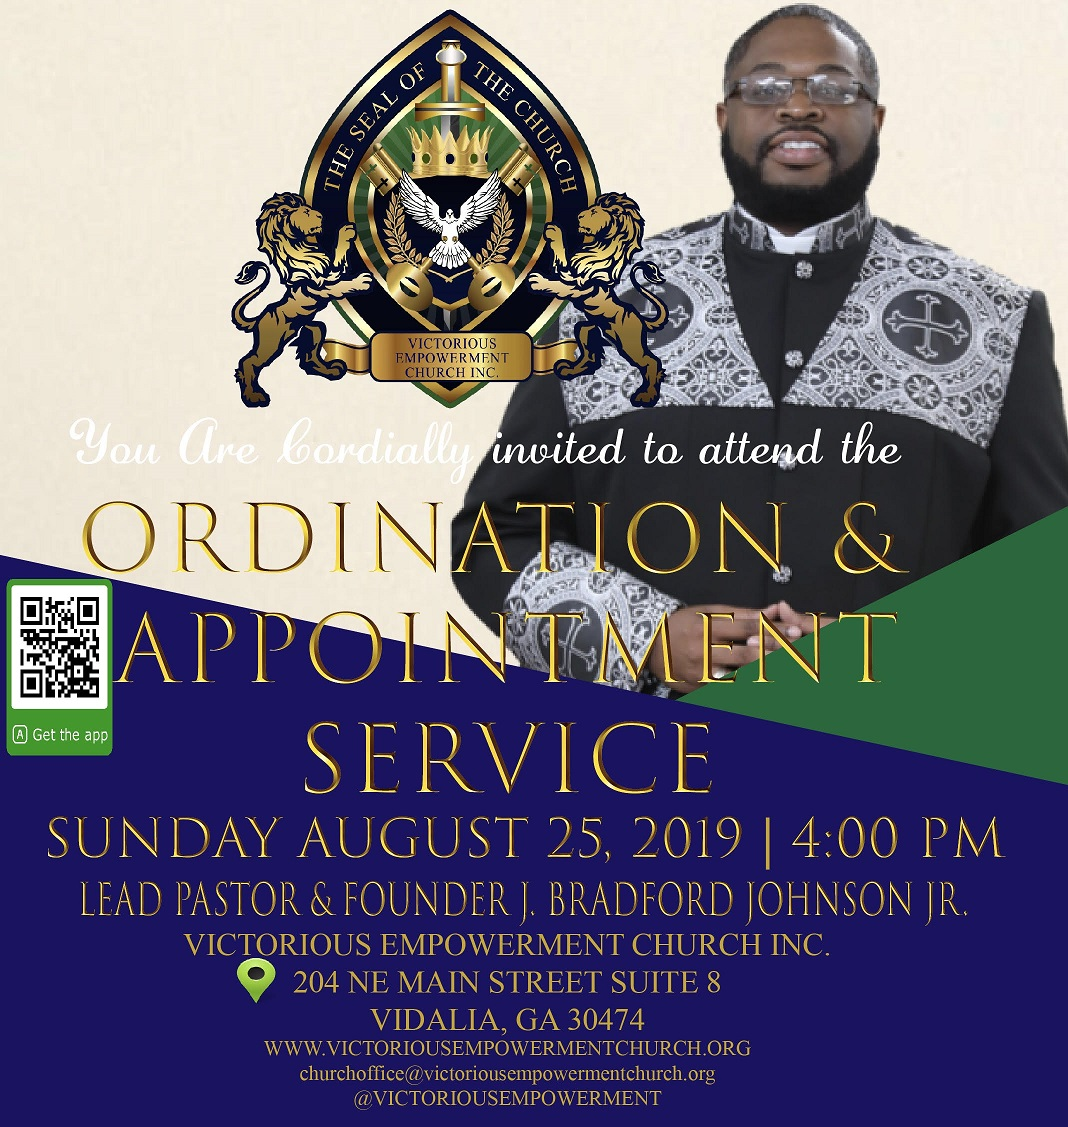 2019 08-25 Ordination & Appointment Service at Victorious